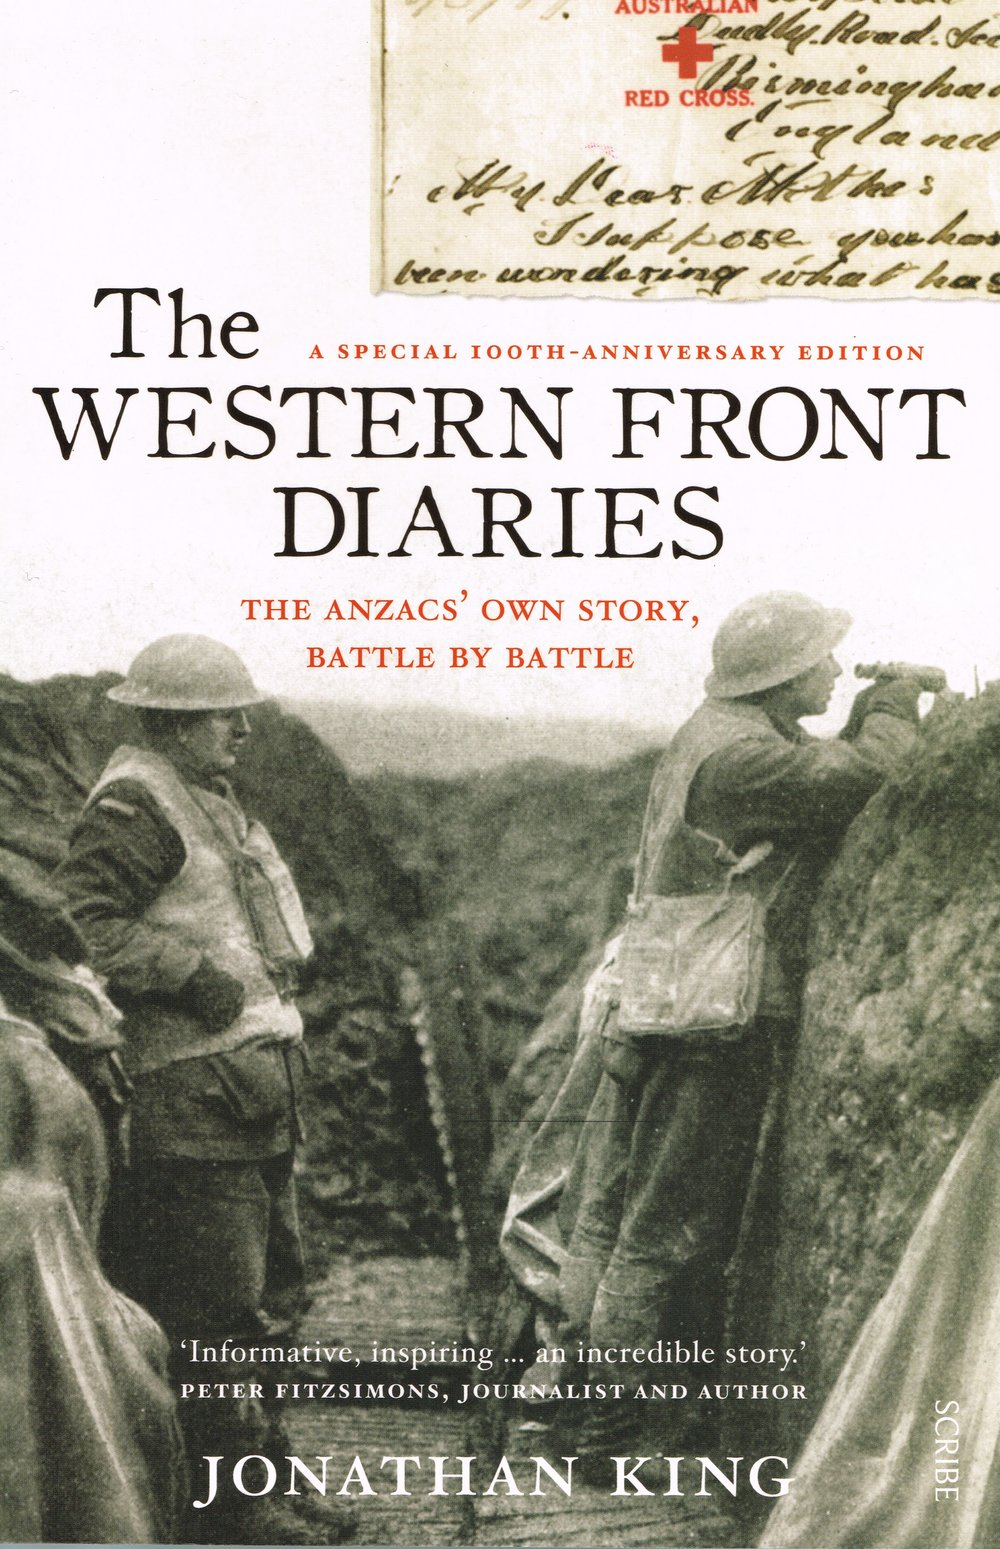 The Western Front diaries : The Anzac's own story, battle by battle Jonathan King